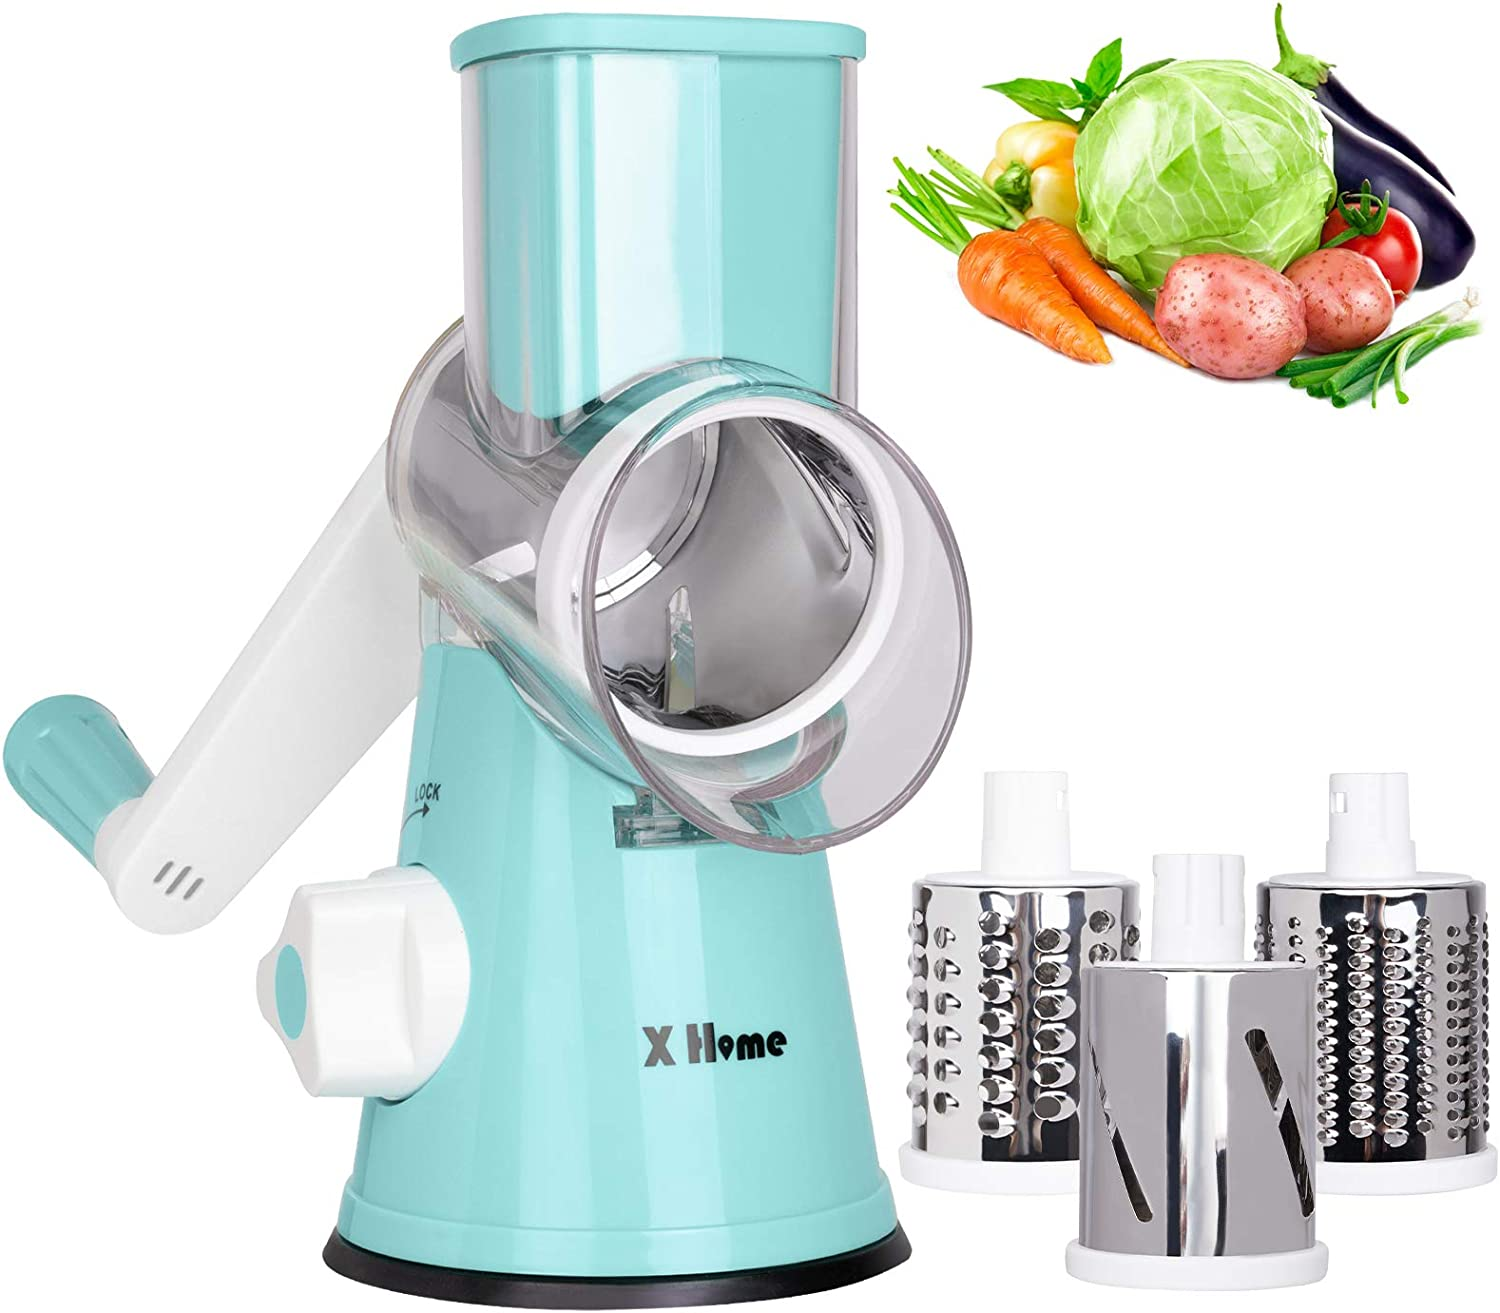 X Home Rotary Cheese Grater, 3 Drum Blades Cheese Shredder, Manual Vegetable Shredder Slicer Grinder with Strong Suction Base, Easy-to-clean (Blue)